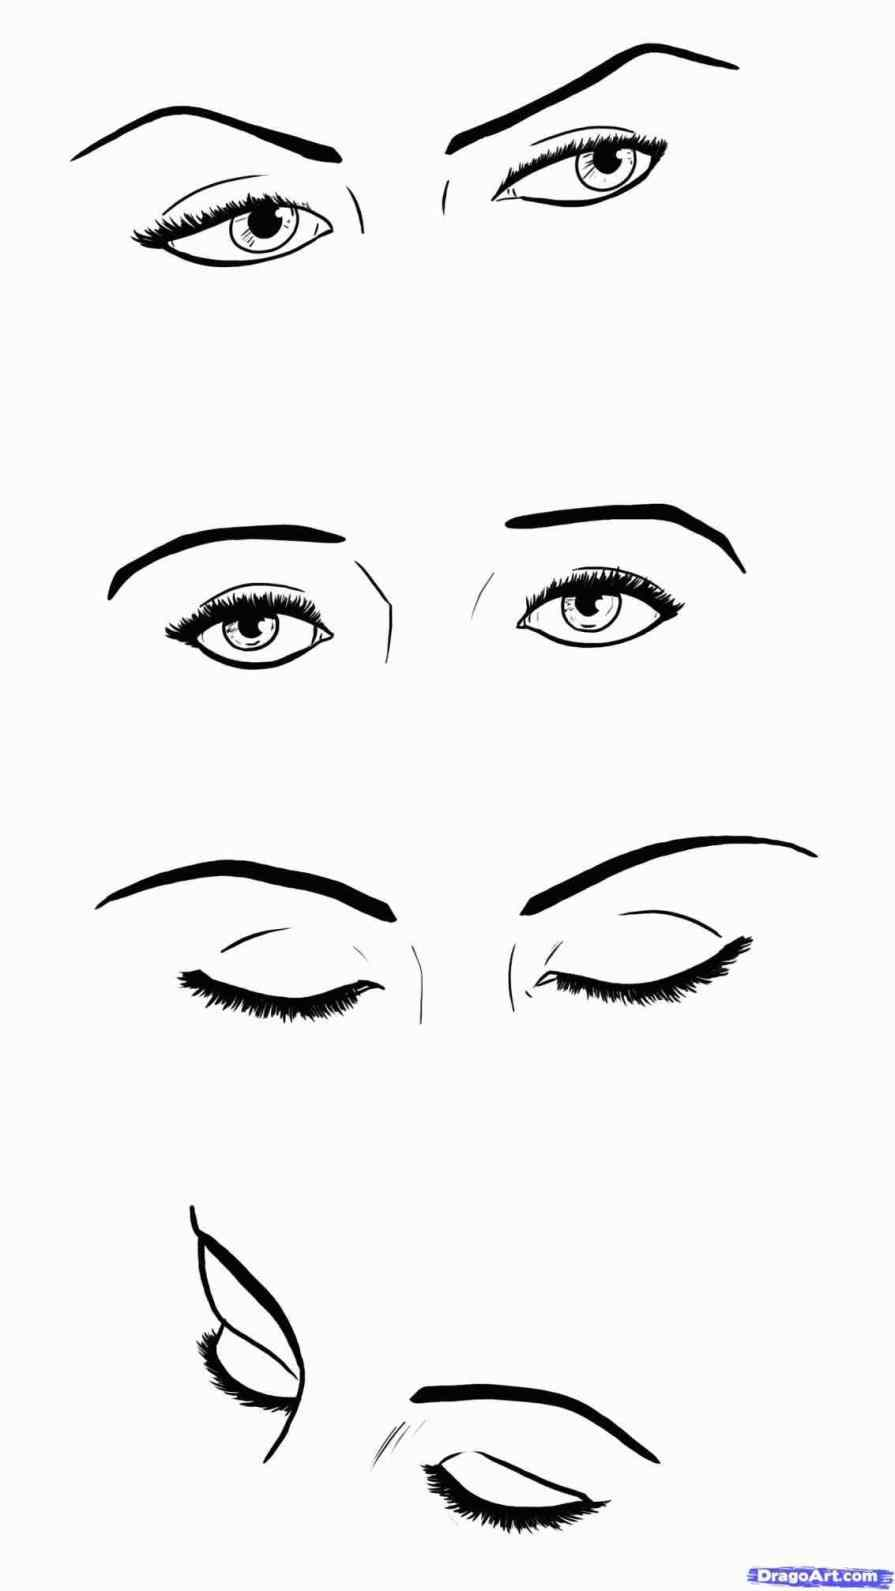 JohnnyBro's How To Draw Manga: Drawing Manga Eyes (Part II) |How To Draw Anime Girl Eyes Step By Step For Beginners